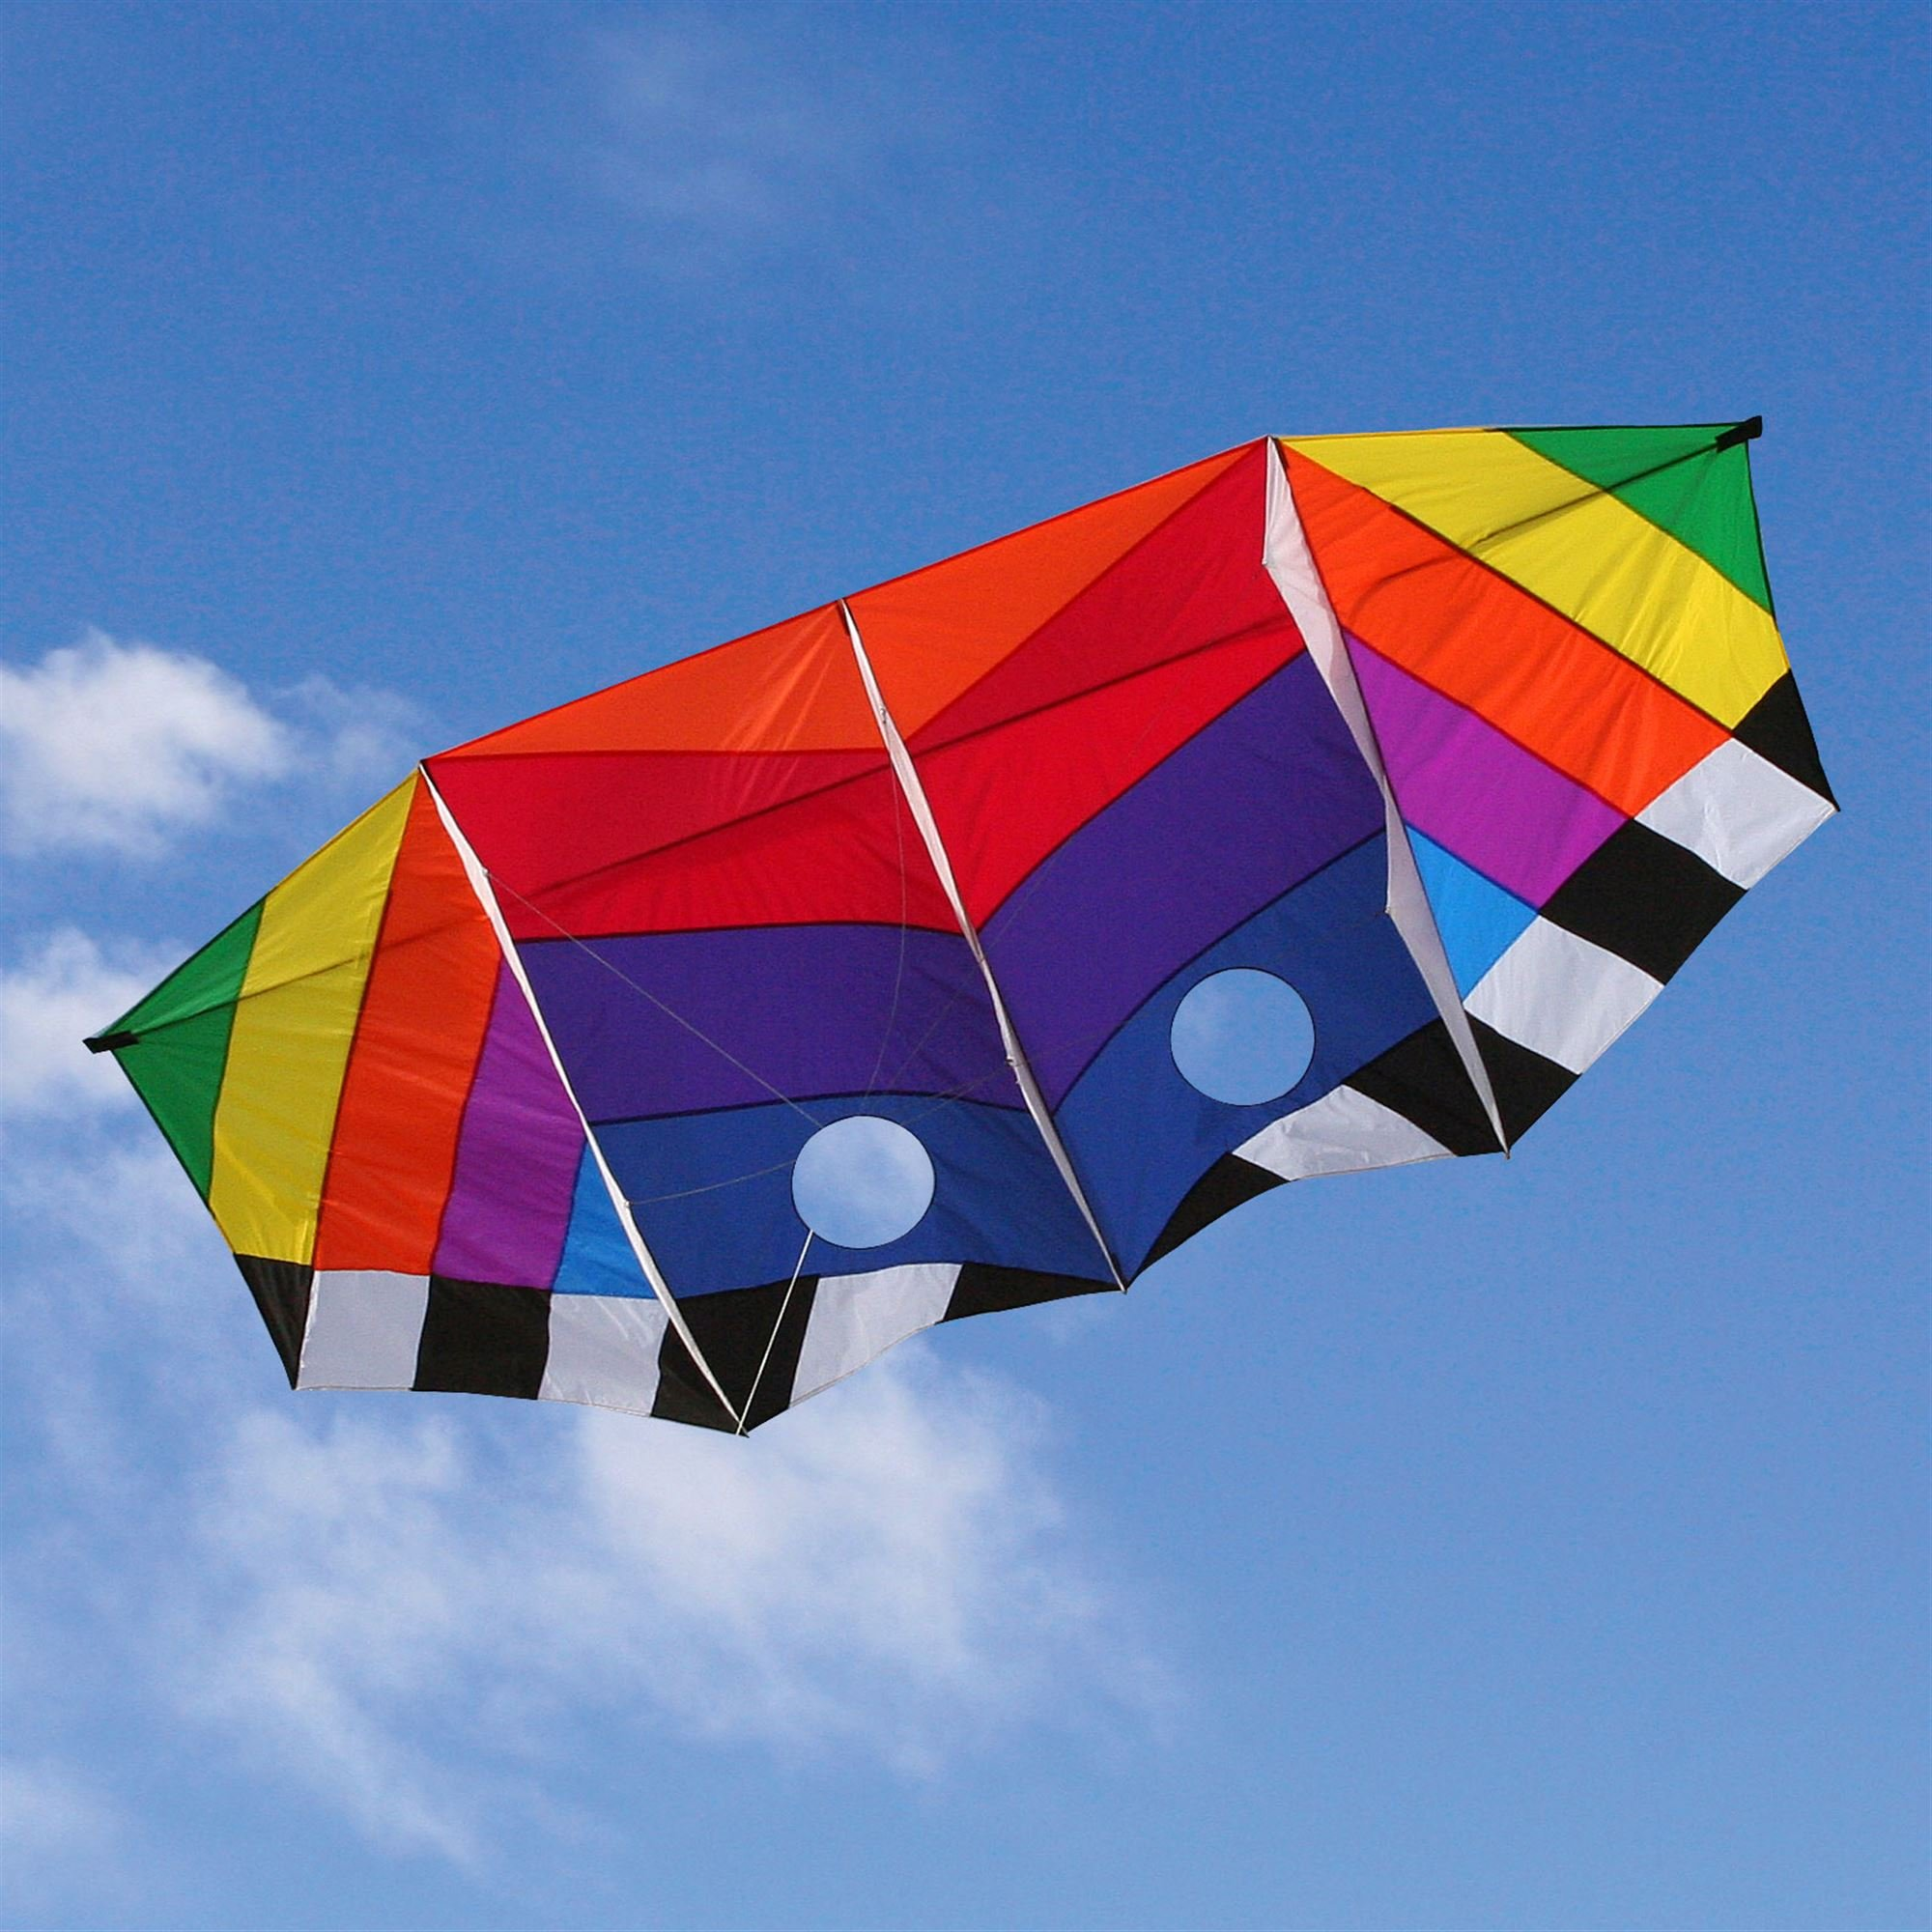 Into The Wind Triton Kite by Into The Wind